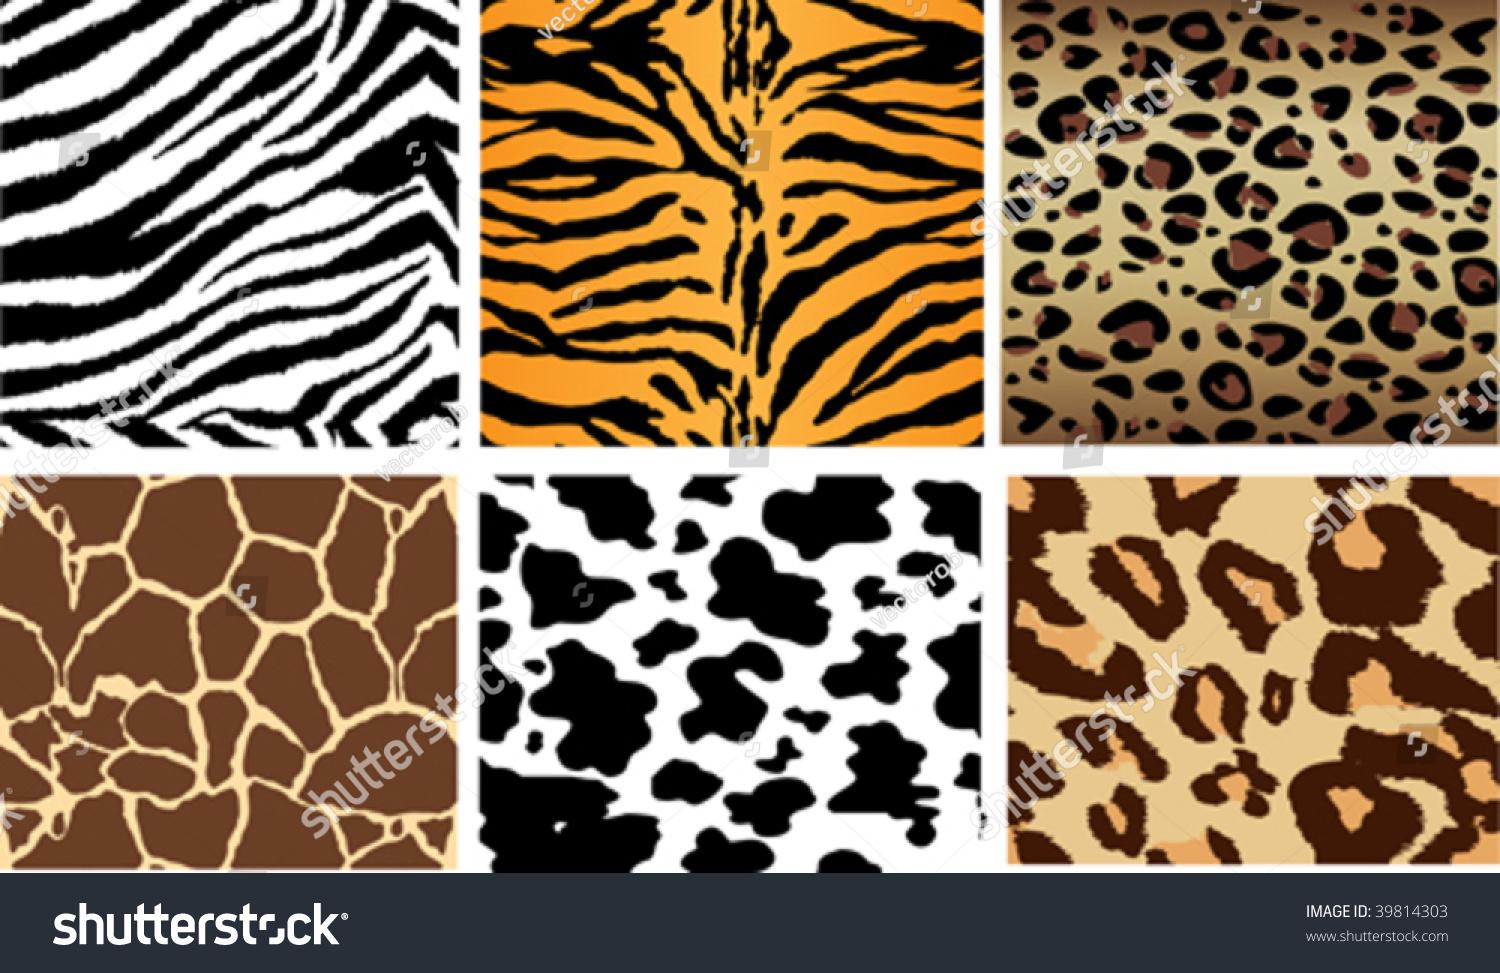 Animal Print Tileable Backgrounds Sides Match Stock Vector